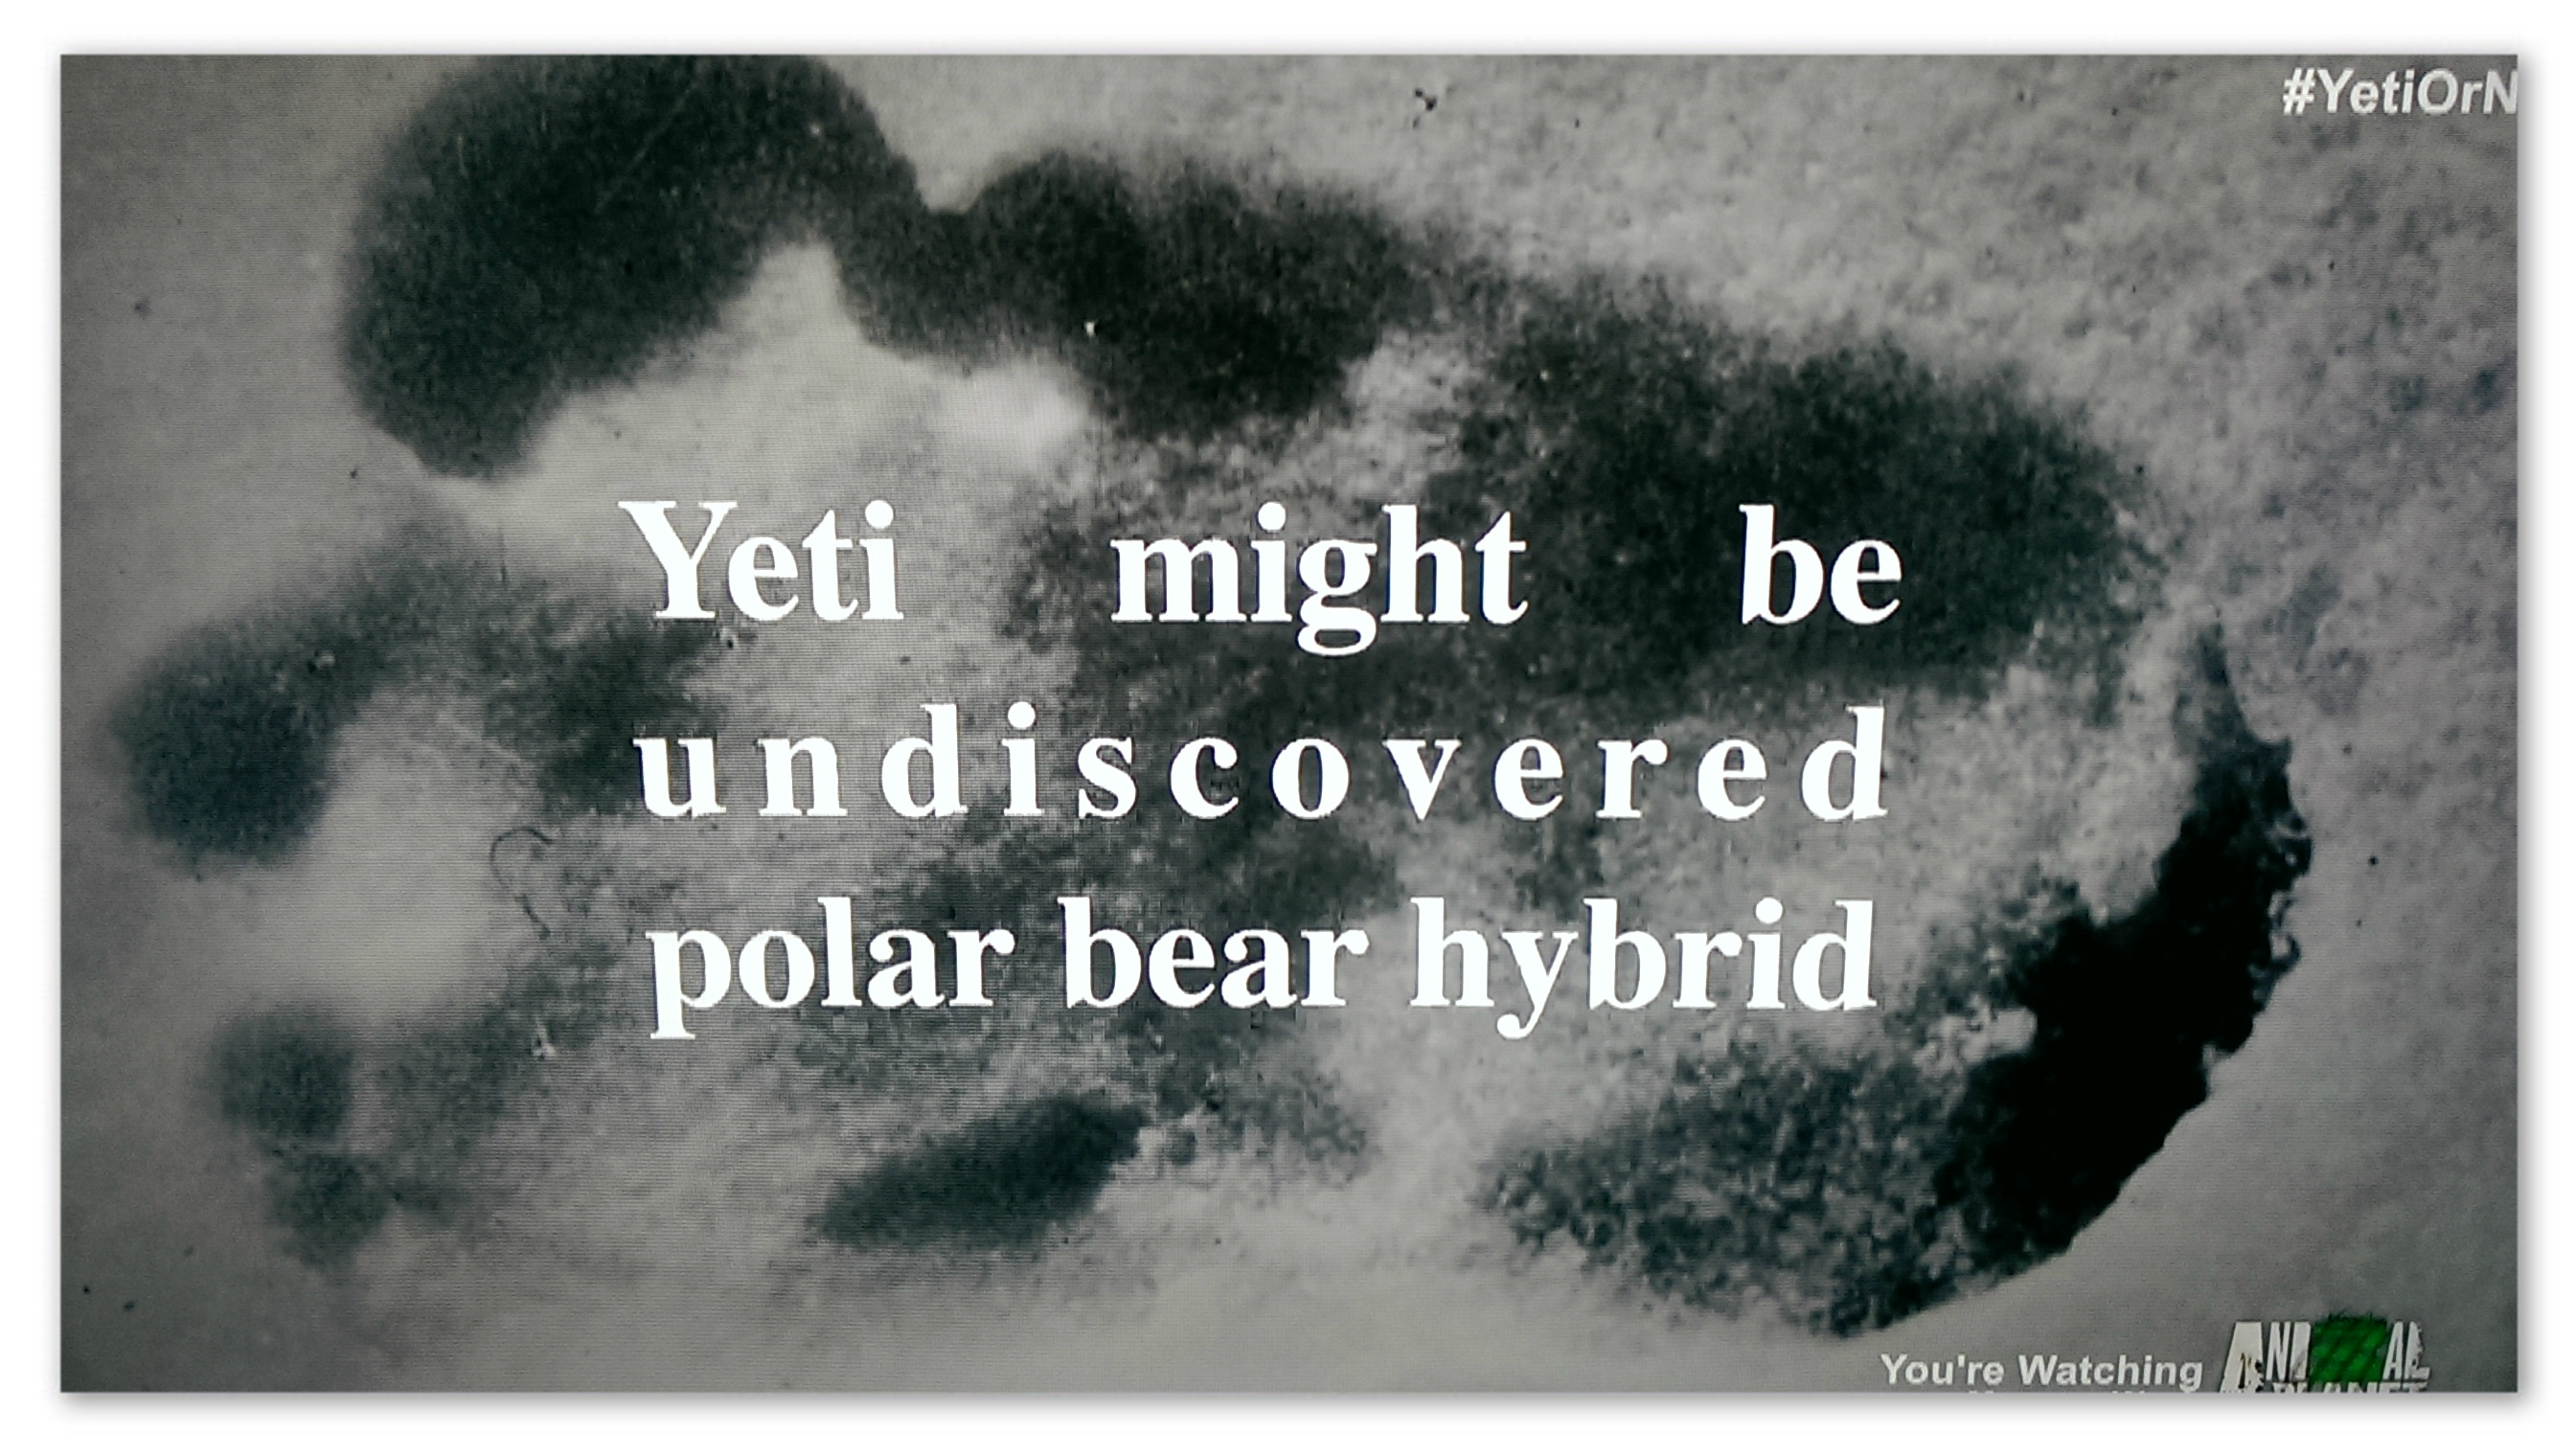 """Image of a footprint with text """"Yeti might be undiscovered polar bear hybrid"""""""